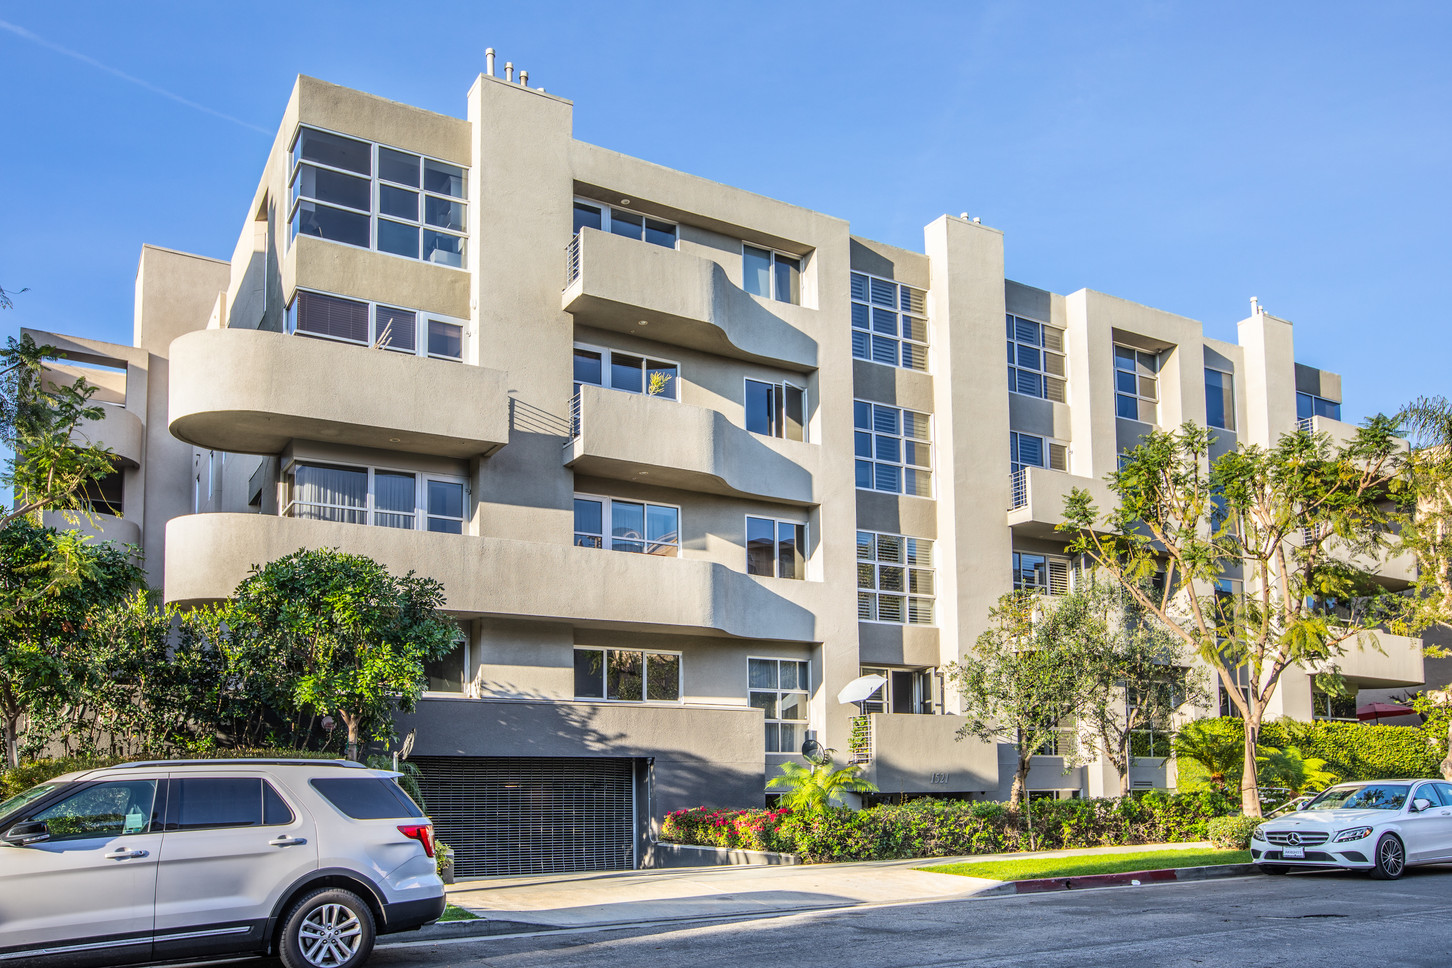 1521 Greenfield Ave. #101 - HsH Prod.-12